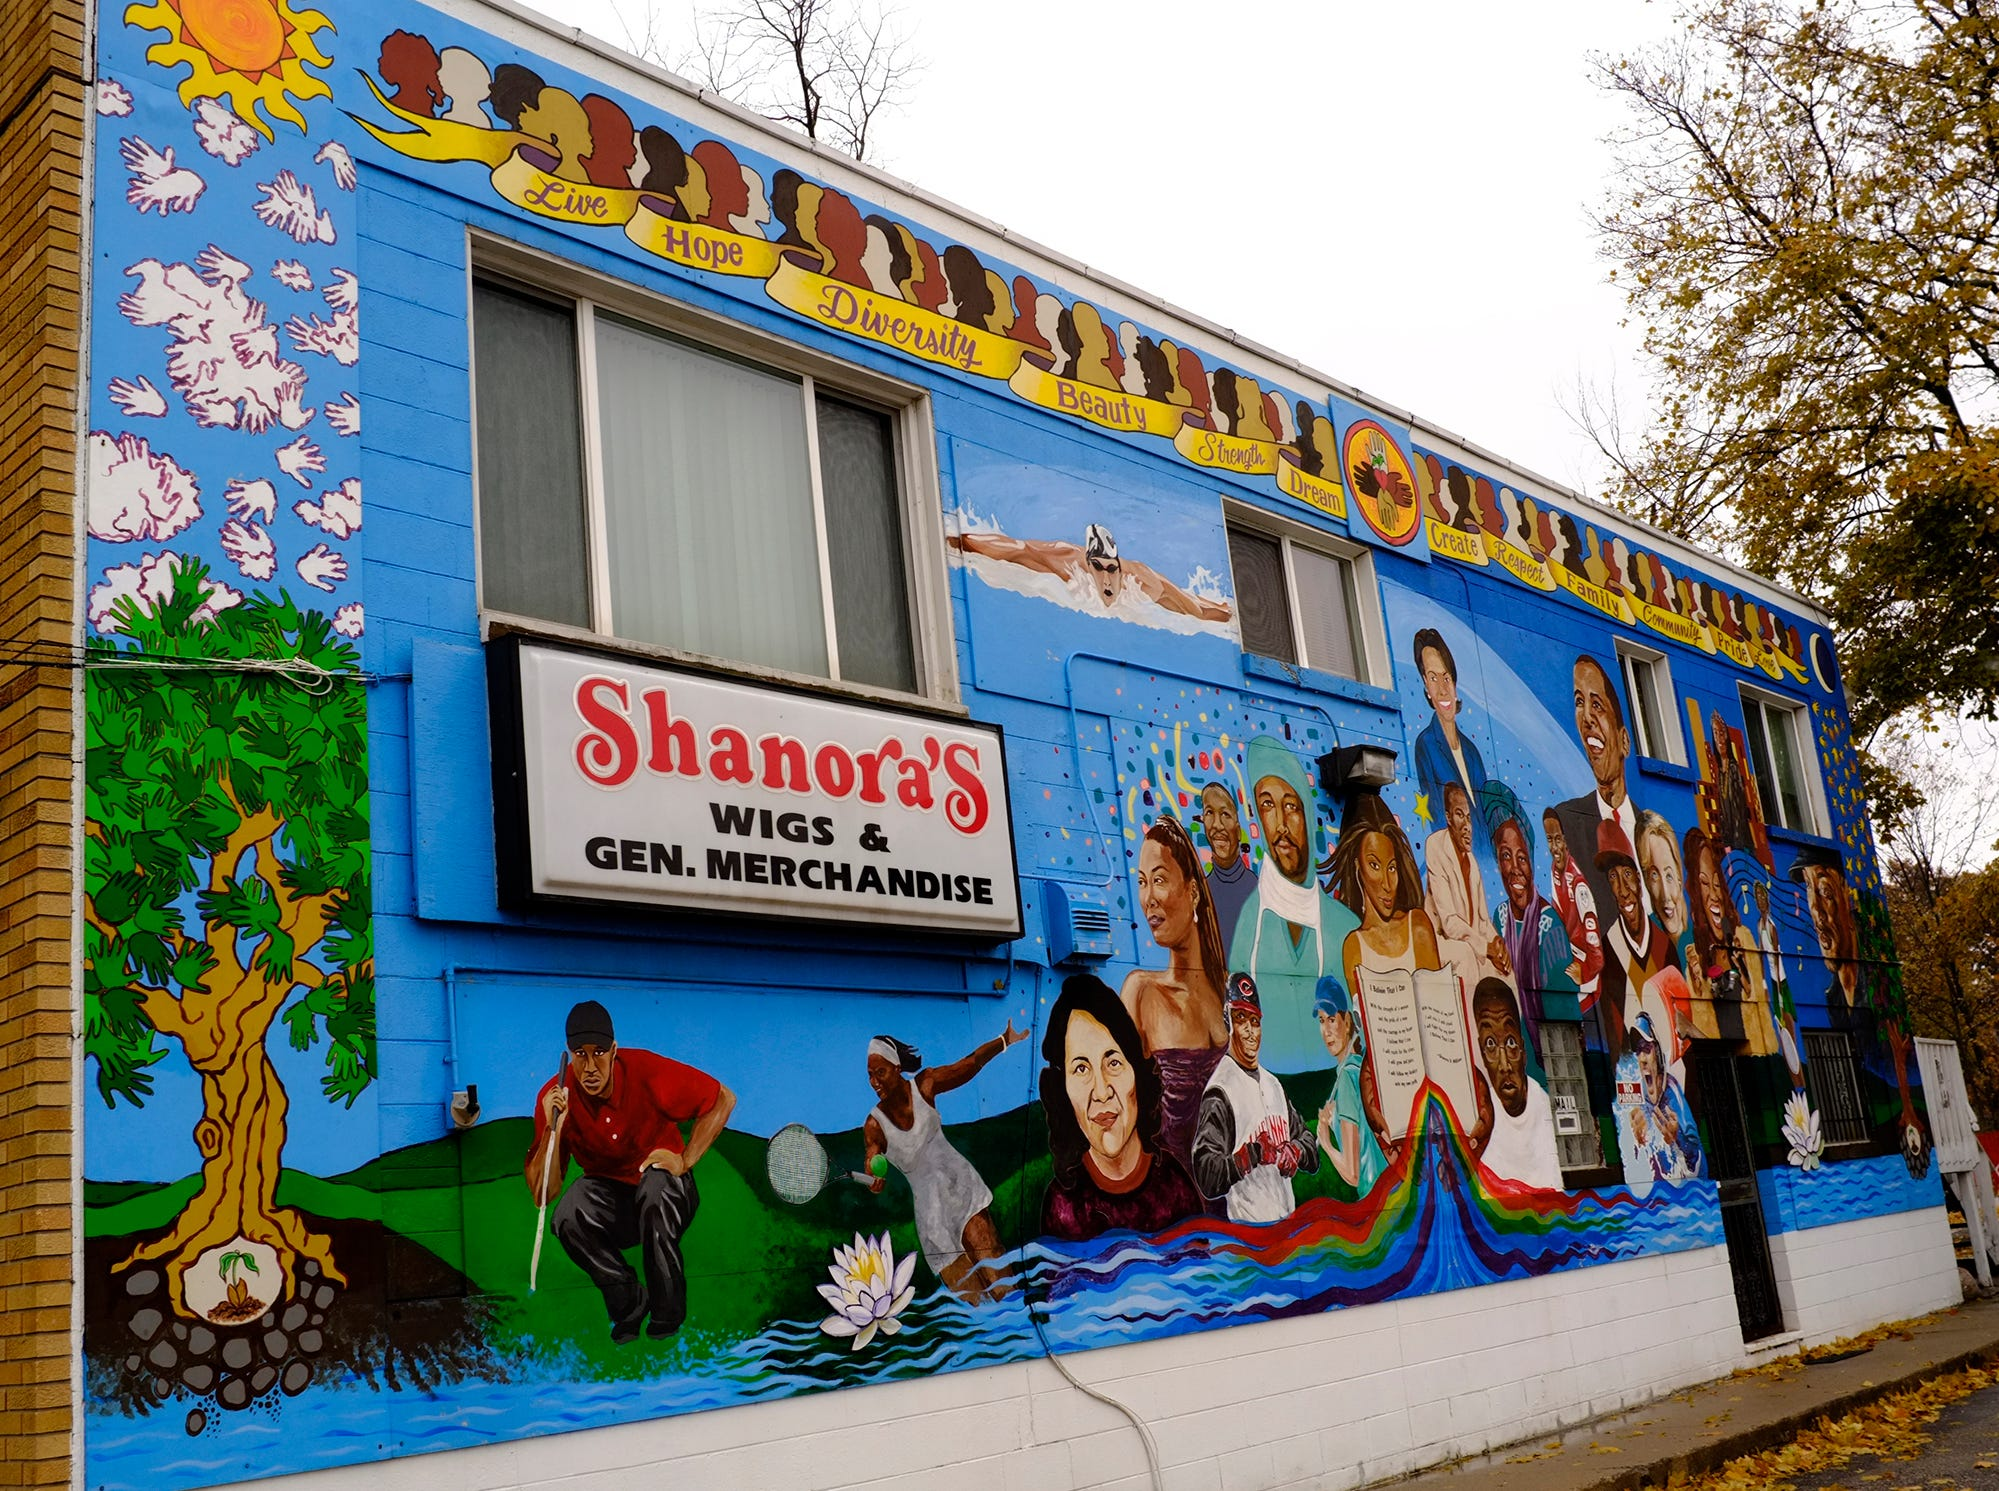 Shanora's on 827 W. Saginaw is one of the oldest murals in the city.